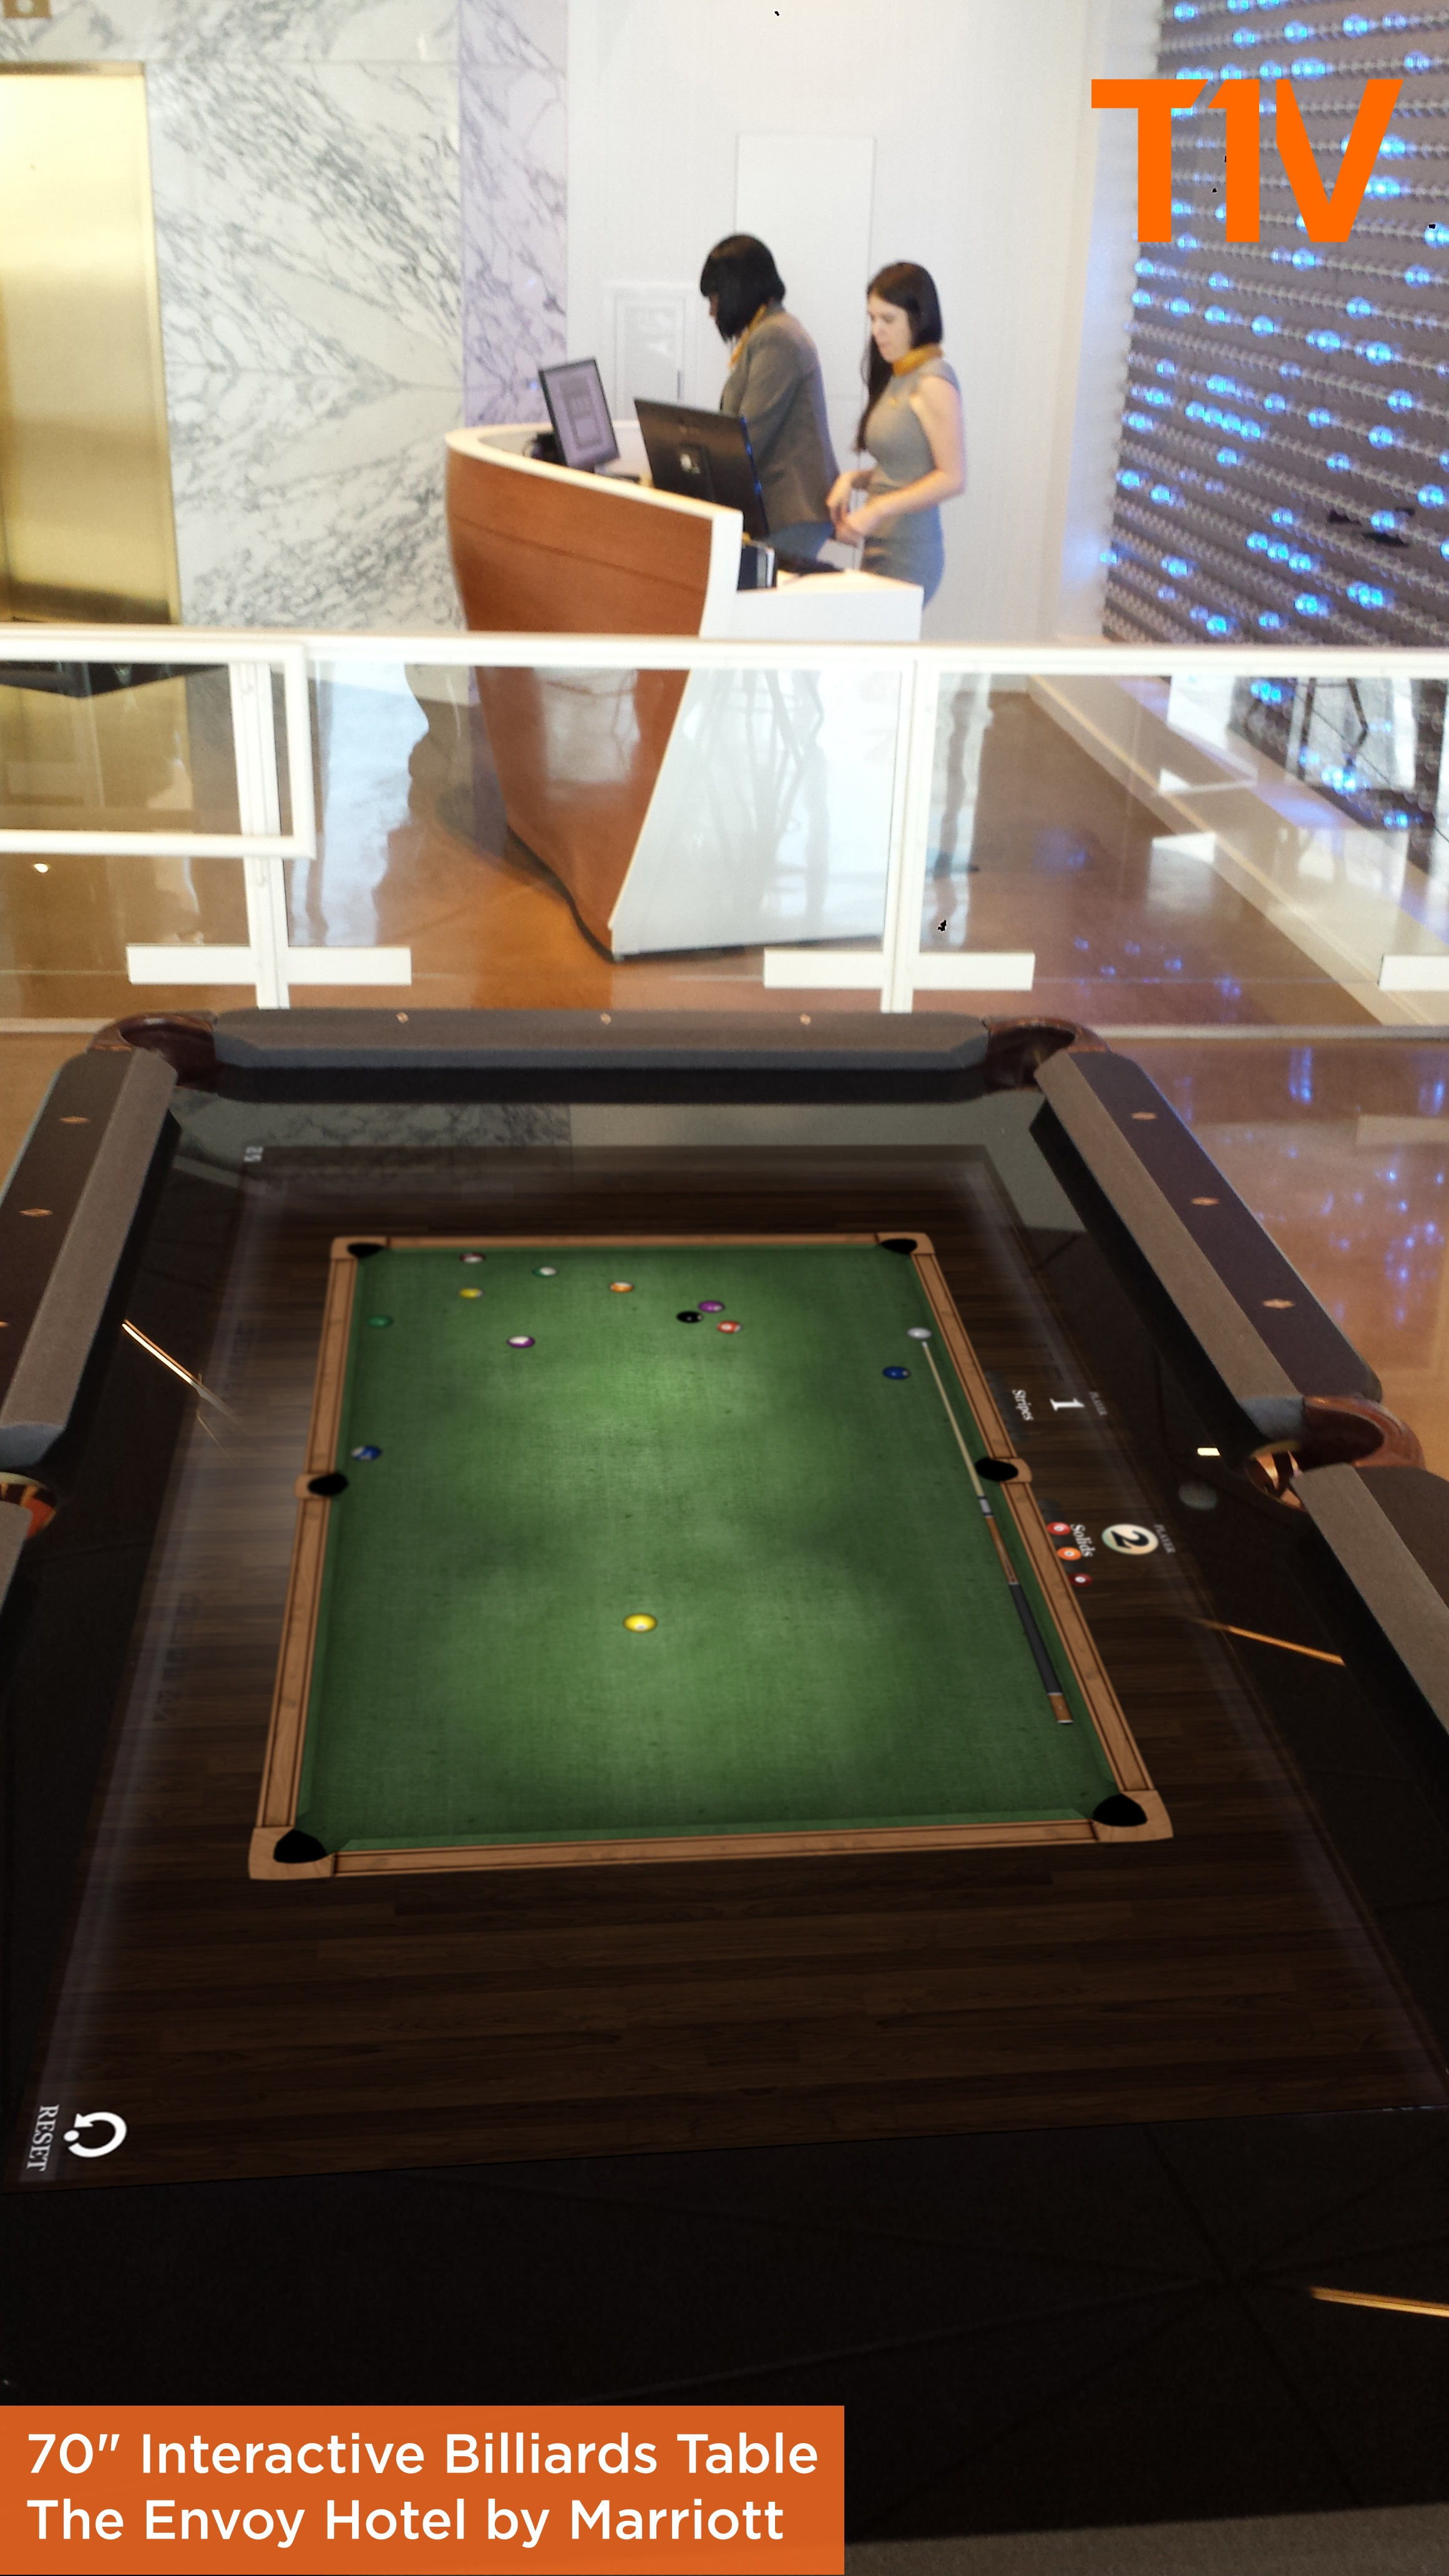 Fish tank pool table - T1v Interactive Pool Table With Captions Jpg